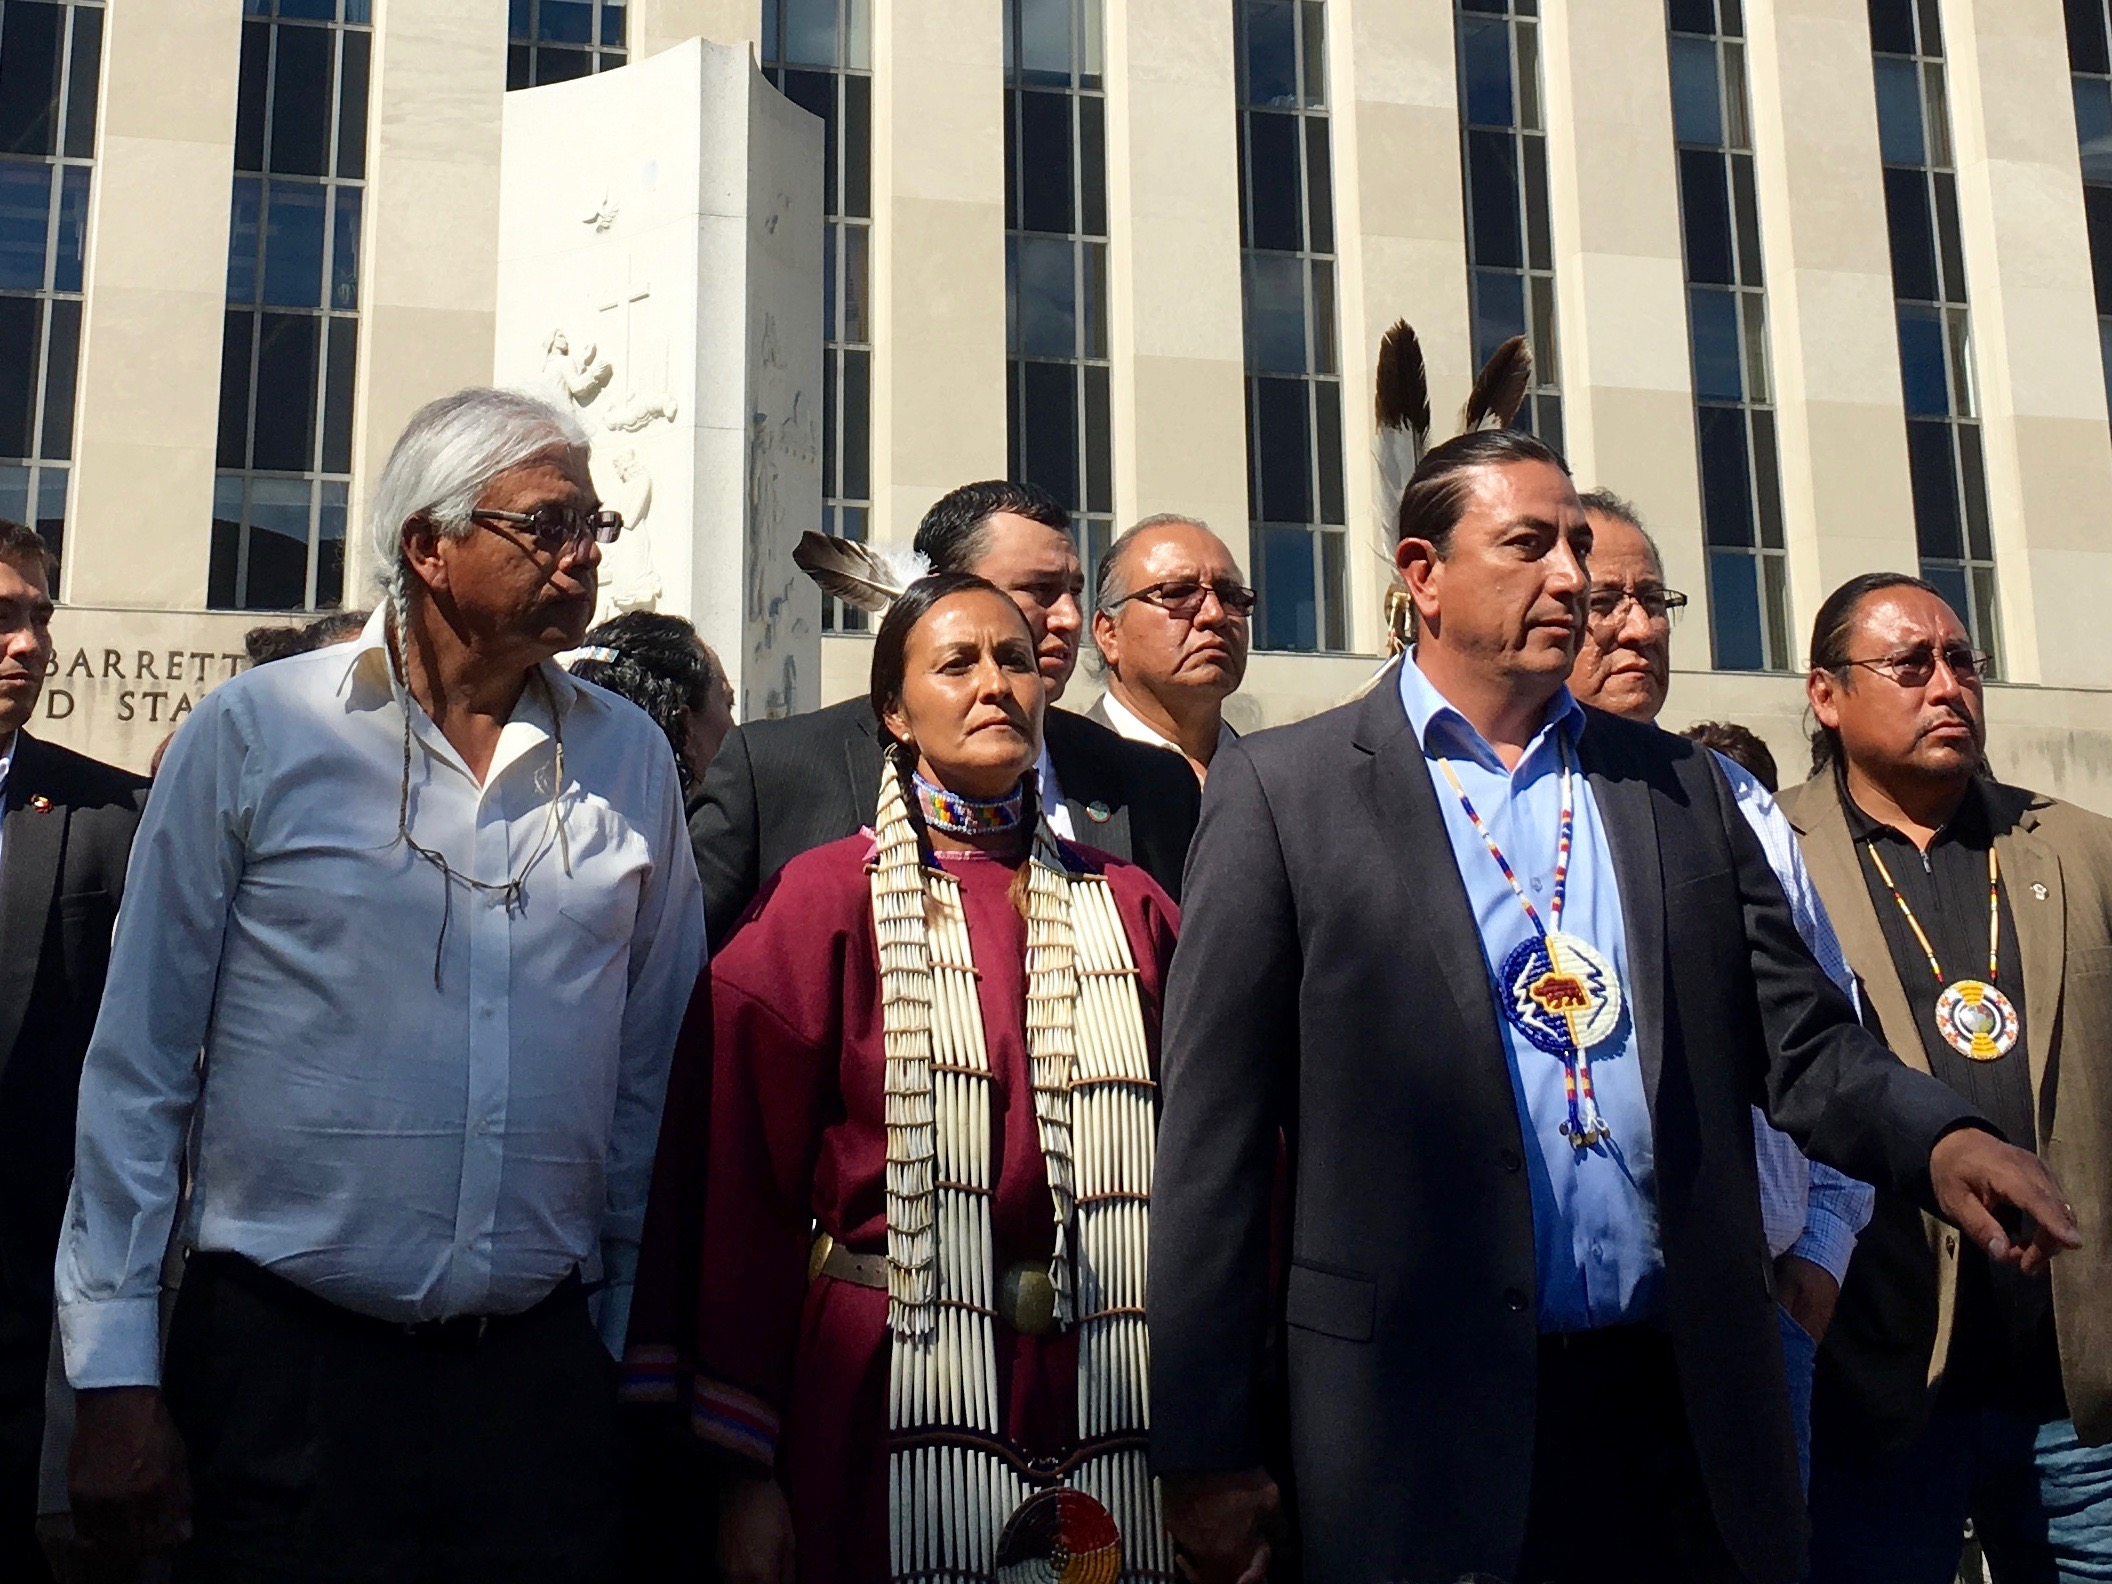 Federal appeals court sets October 5 hearing in #NoDAPL case